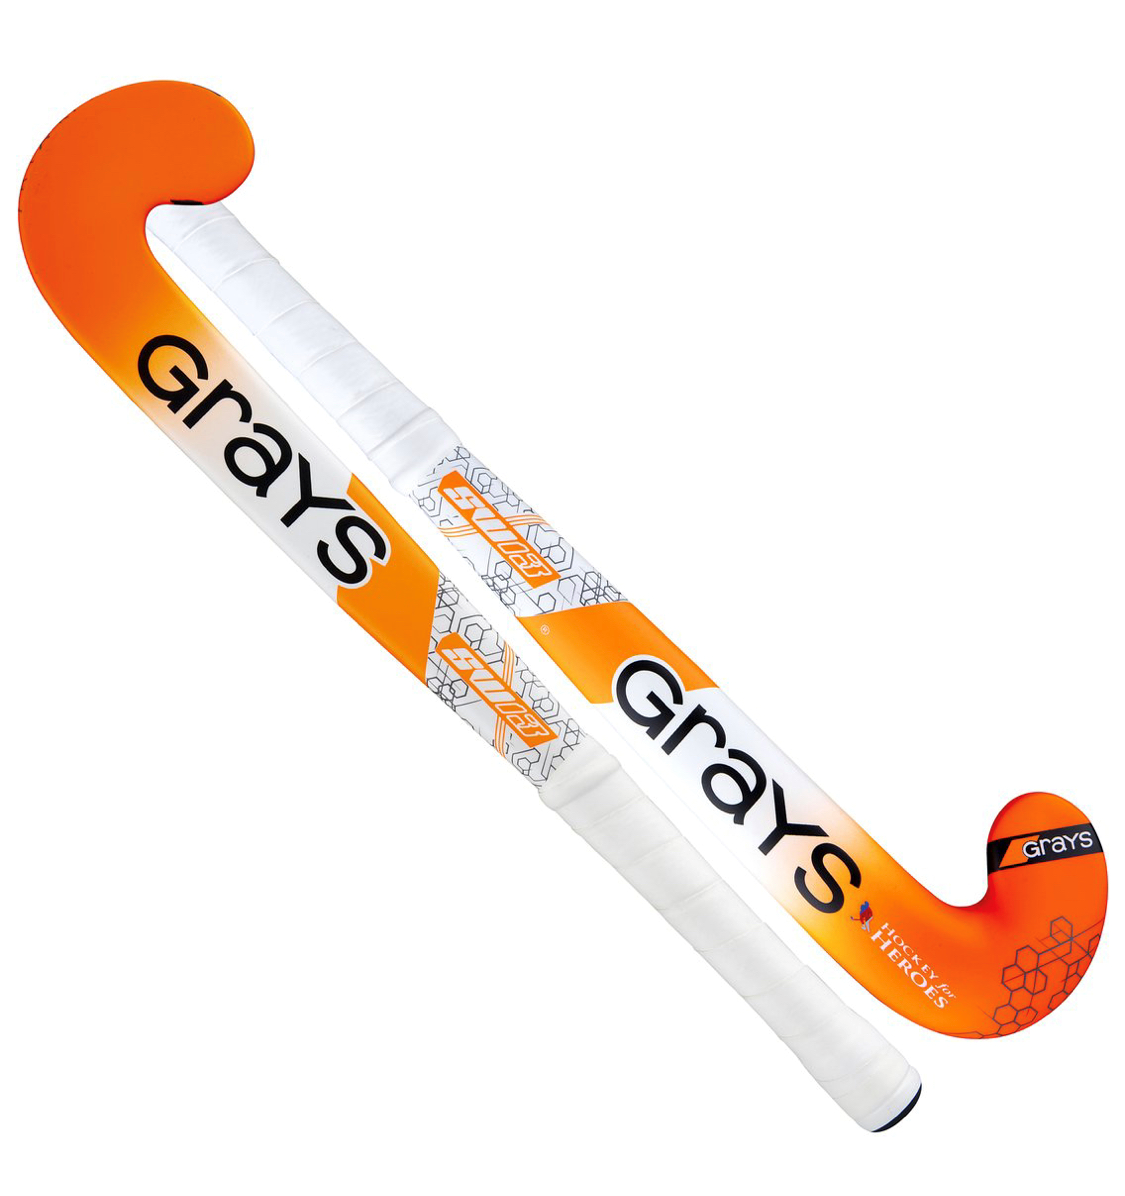 Grays_Replica_Stick.png